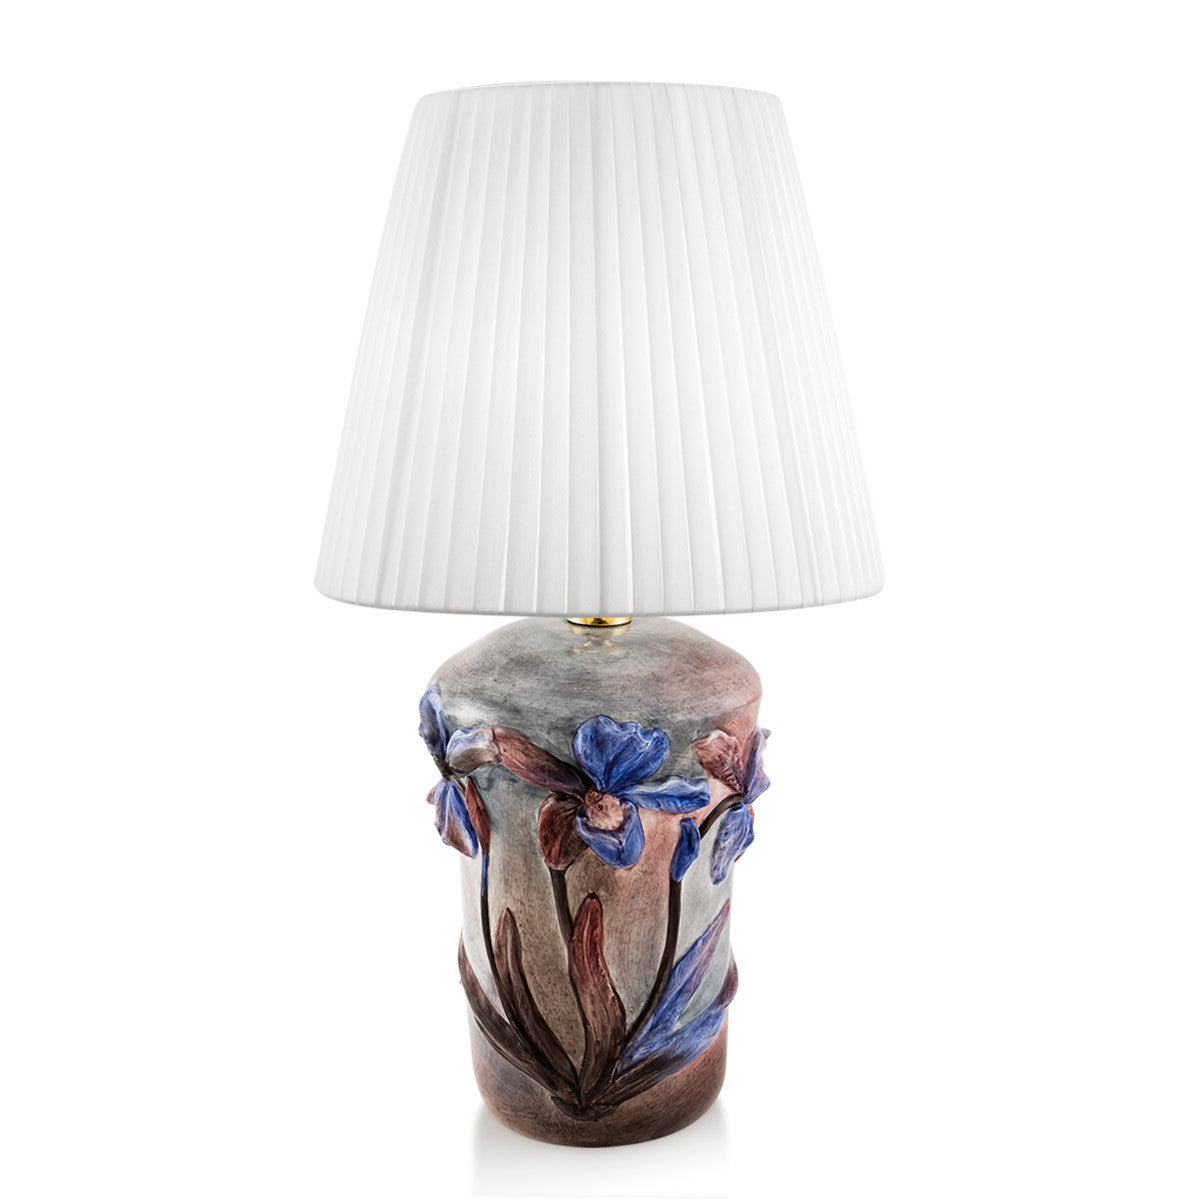 Ceramic table lamp with orchid relief